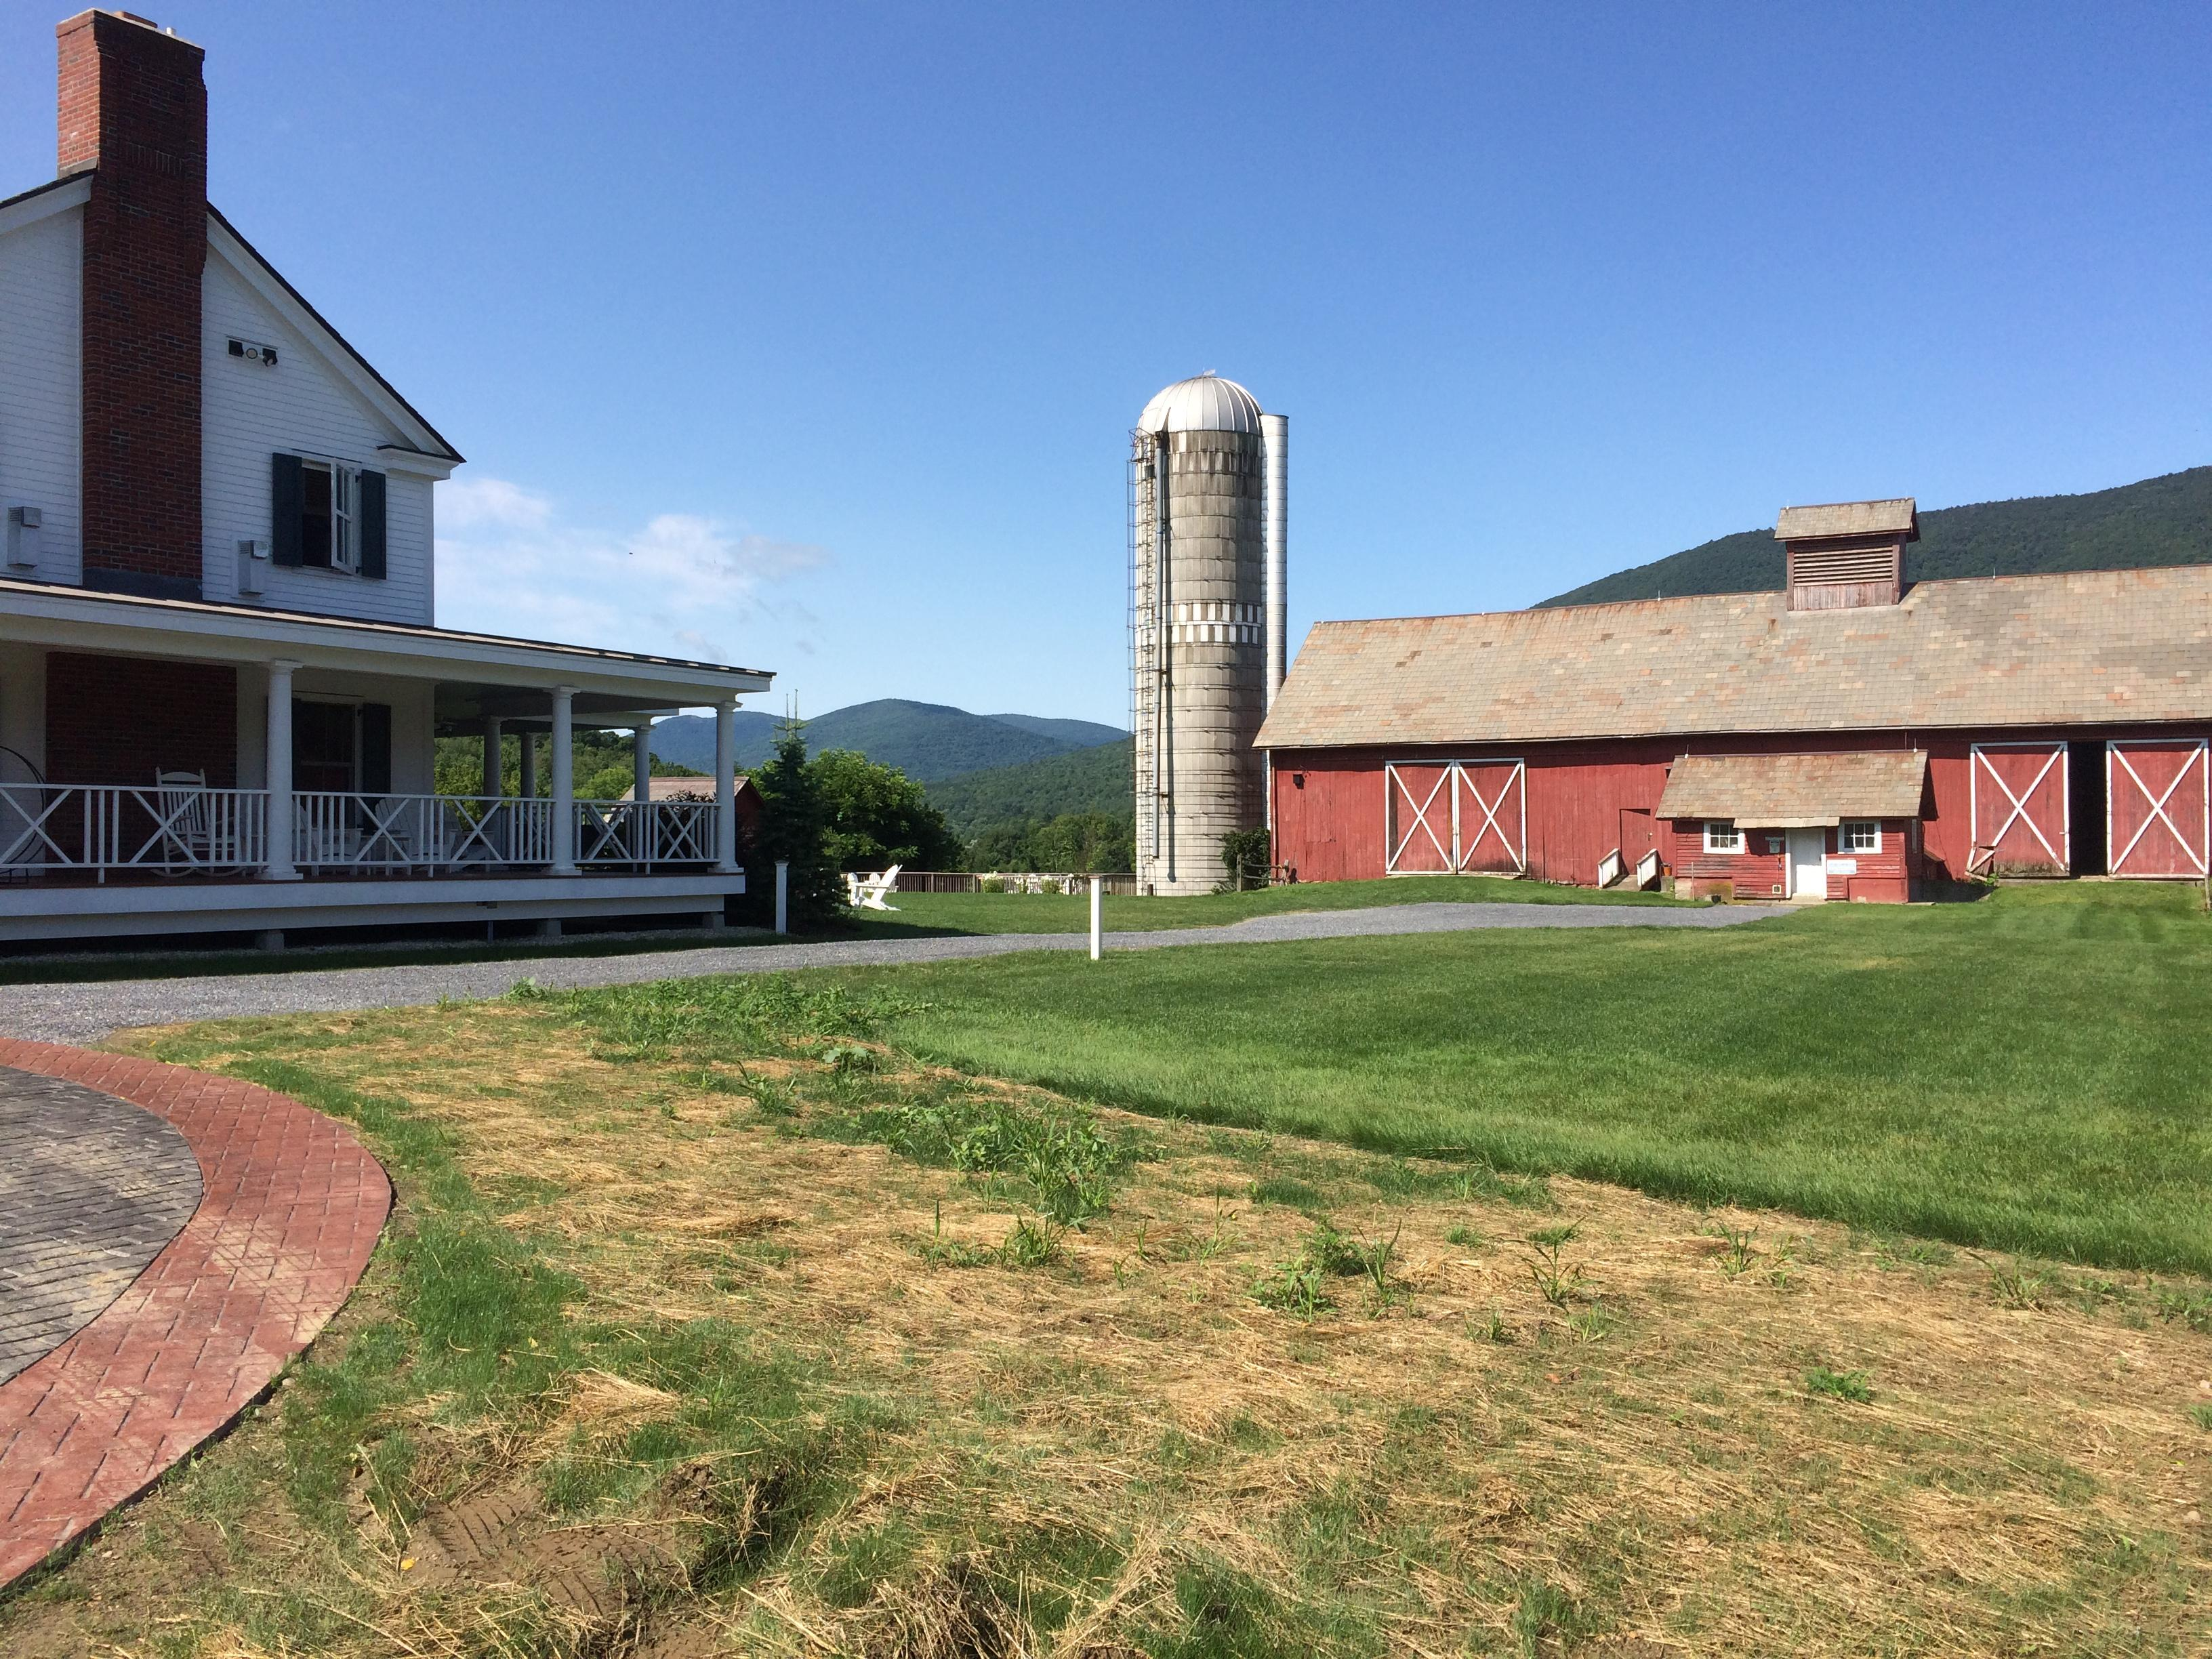 The barn with farm animals to visit.